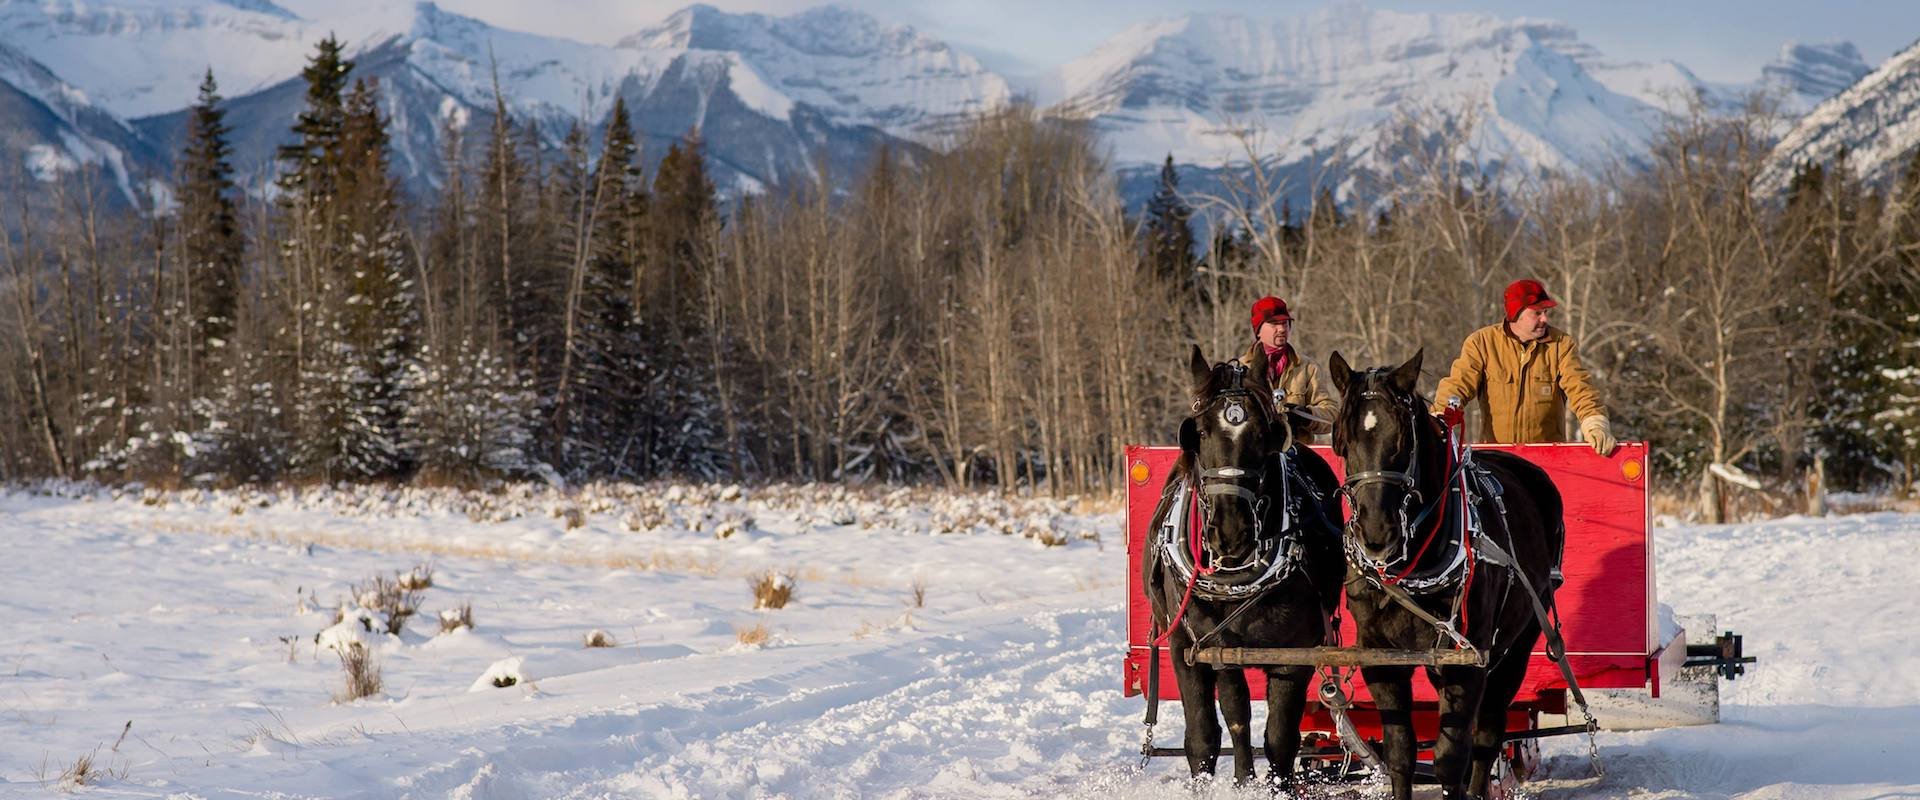 Sleigh Ride at the Banff Christmas Market with Banff Trail Riders